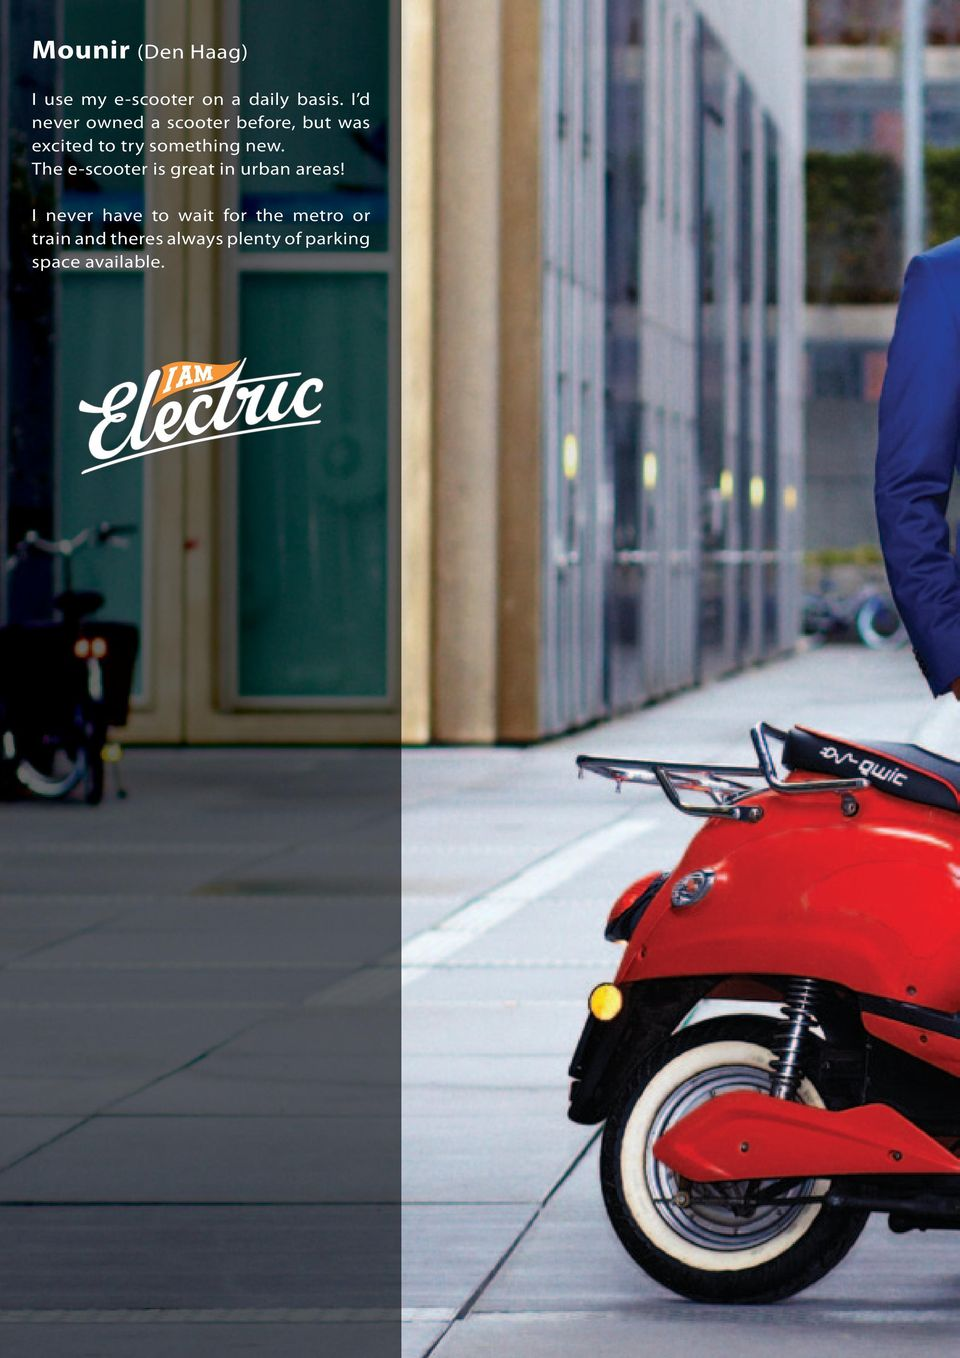 something new. The e-scooter is great in urban areas!